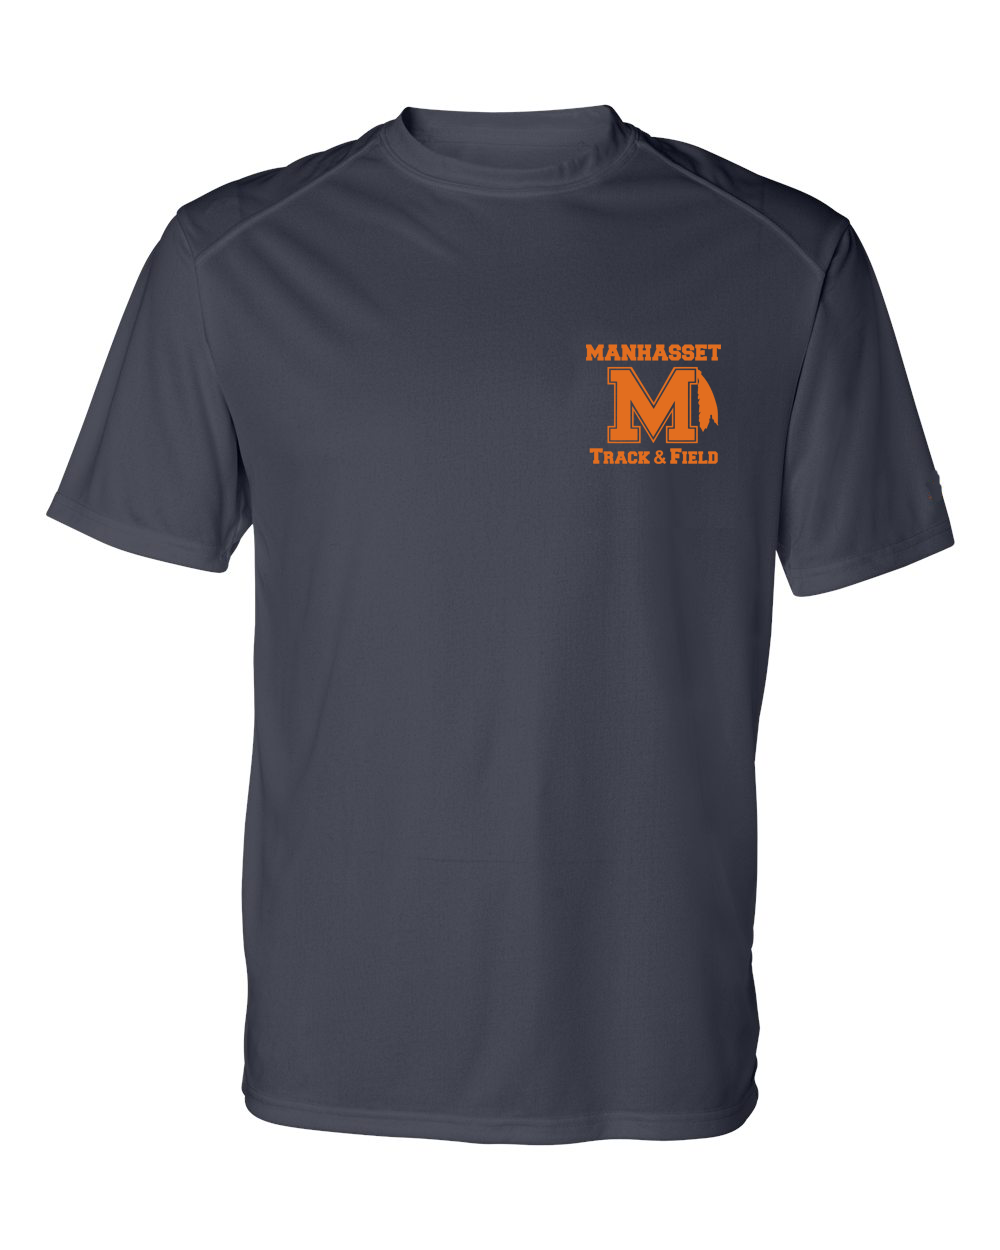 Manhasset Track & Field Adult Tee